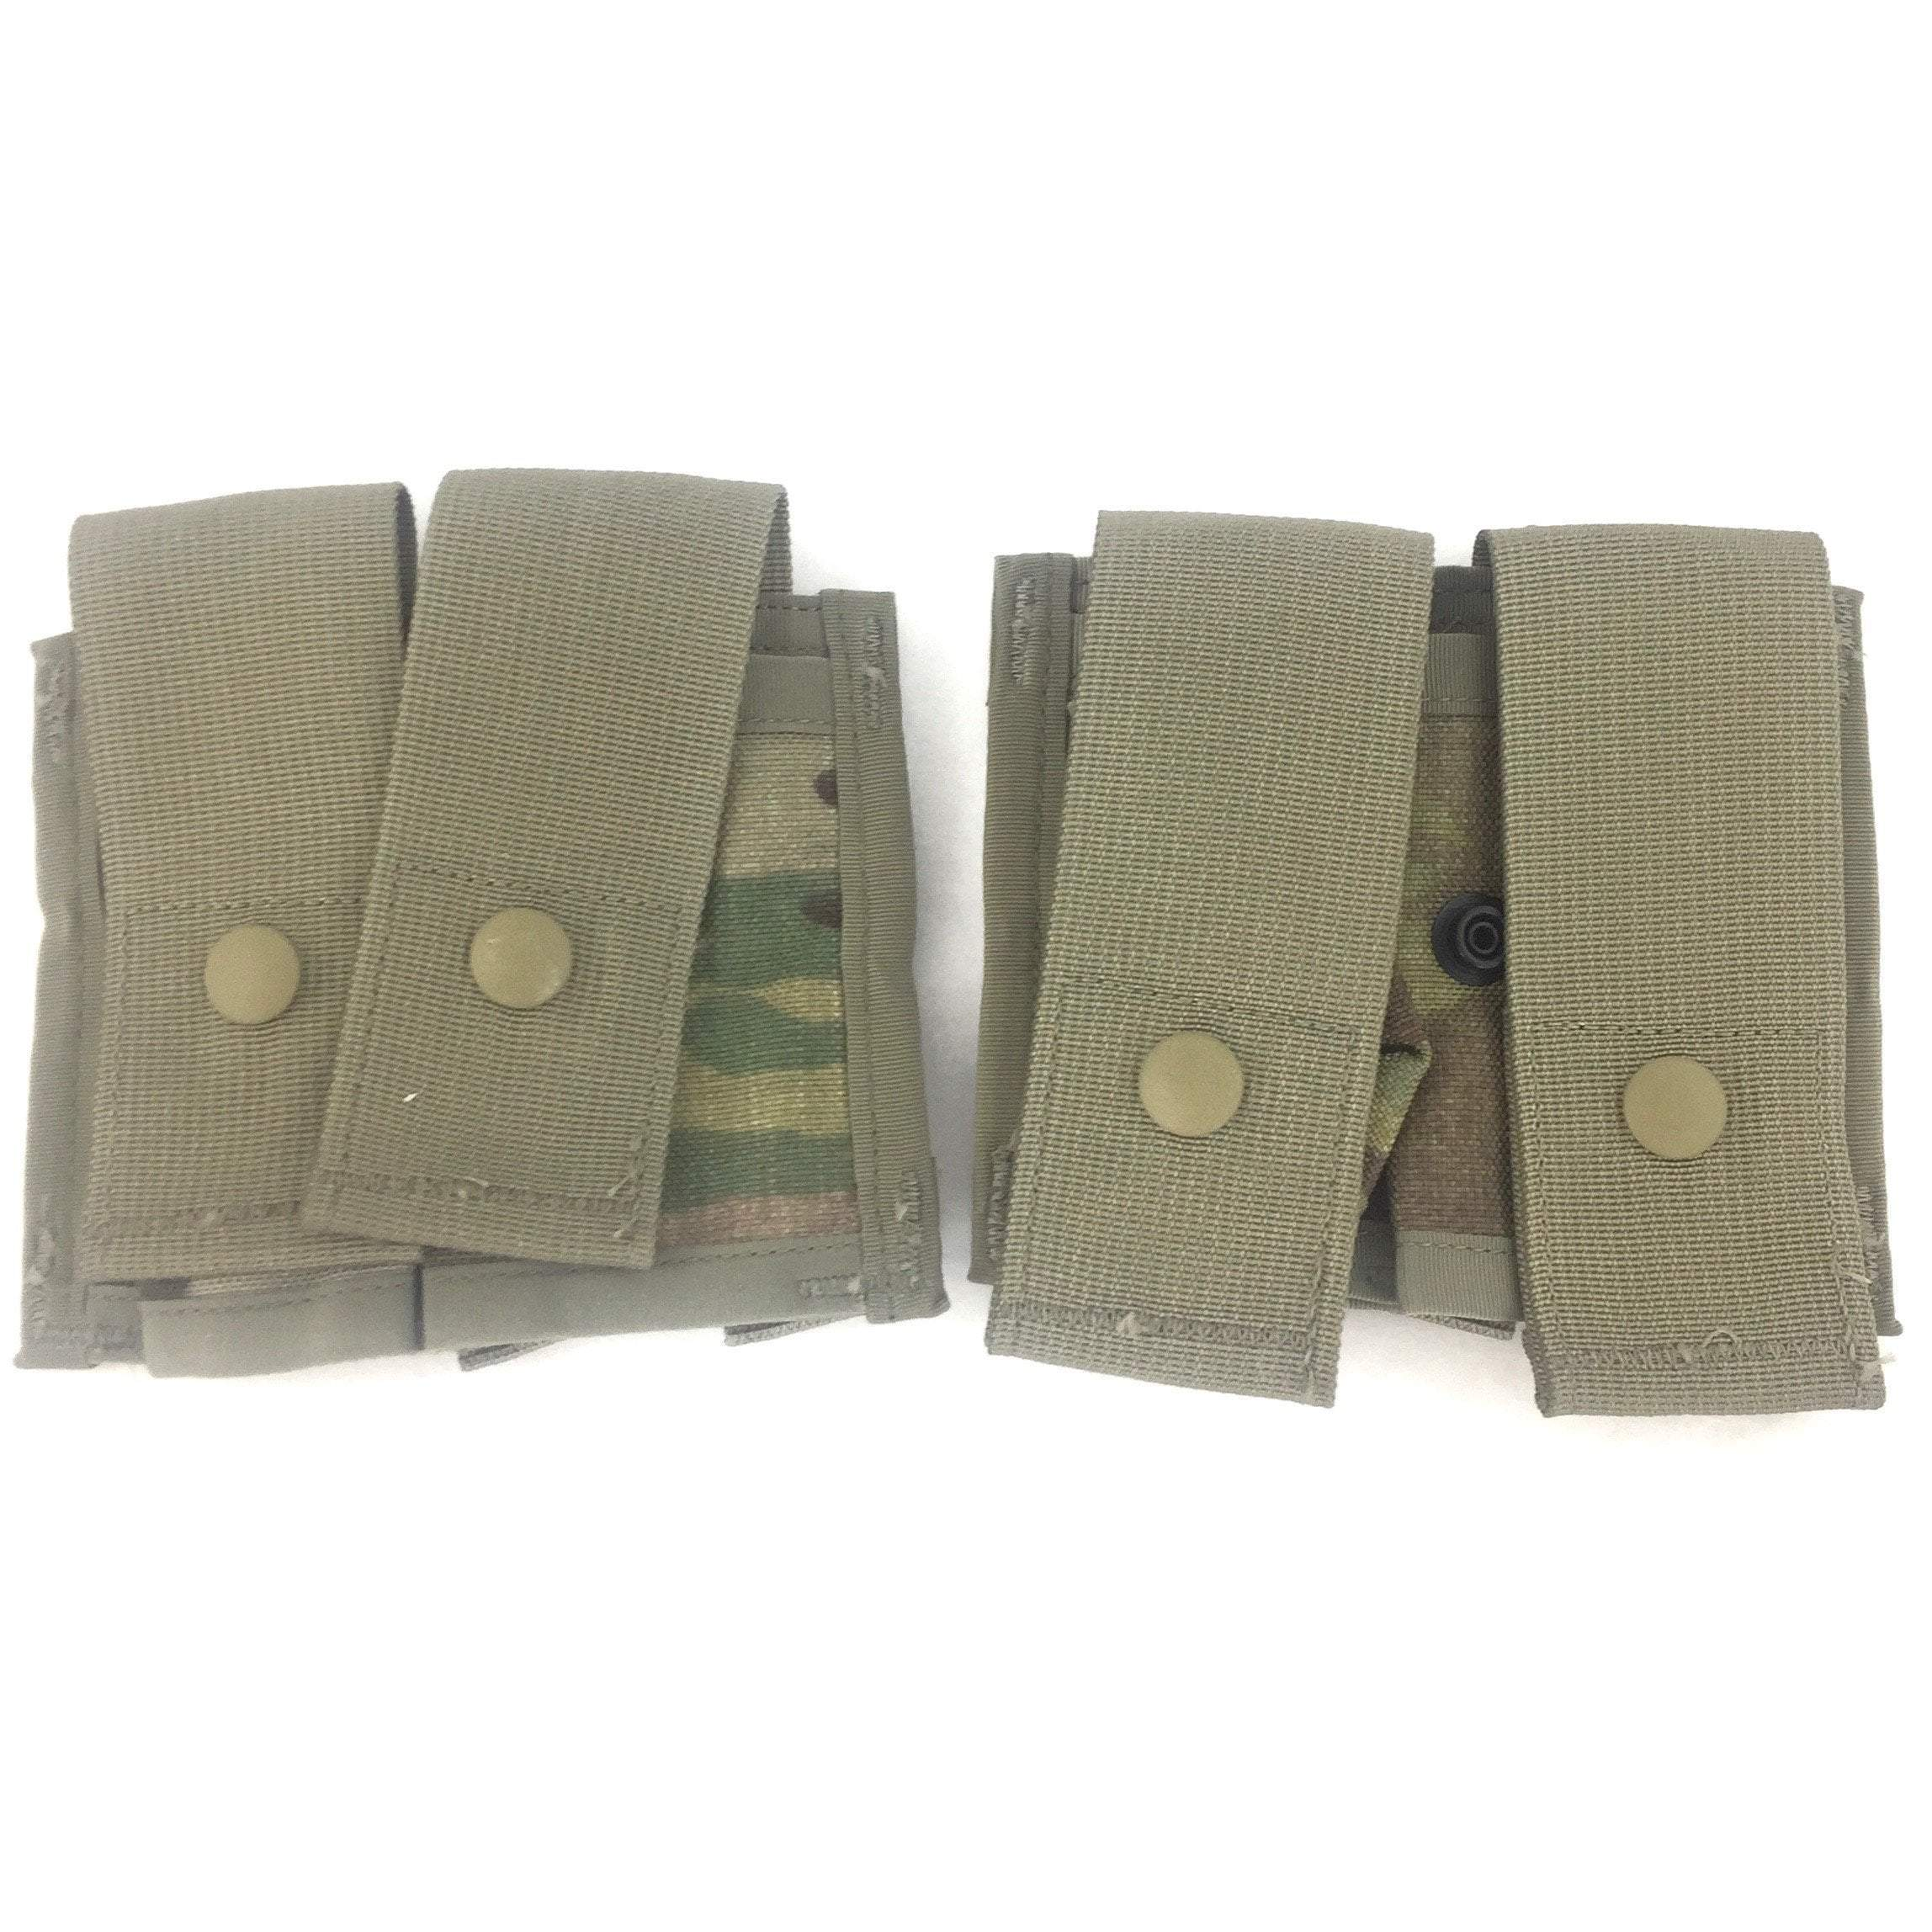 2 Multicam Double Pyrotechnic Pouches